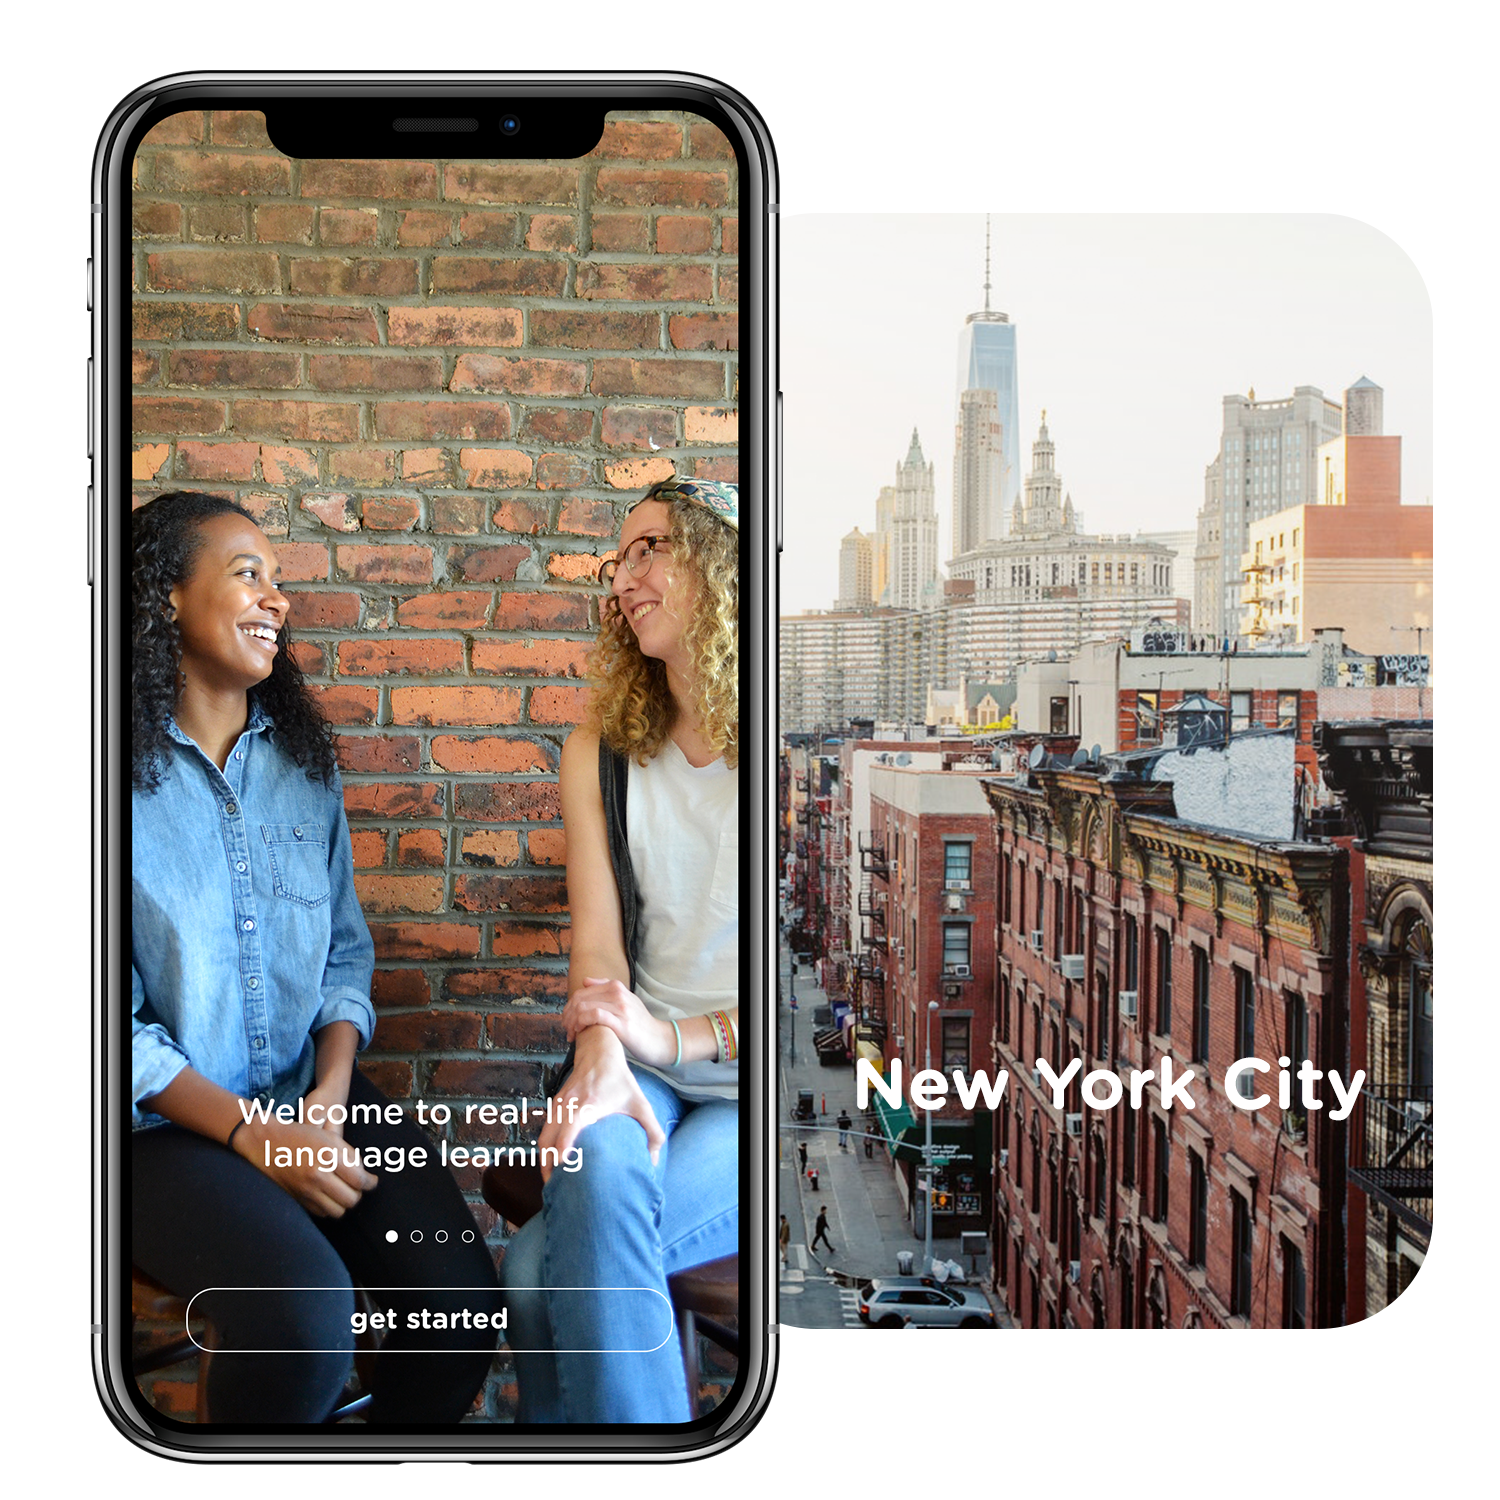 barden-language-exchange-app-inapp-design-new-york-city-language-exchange